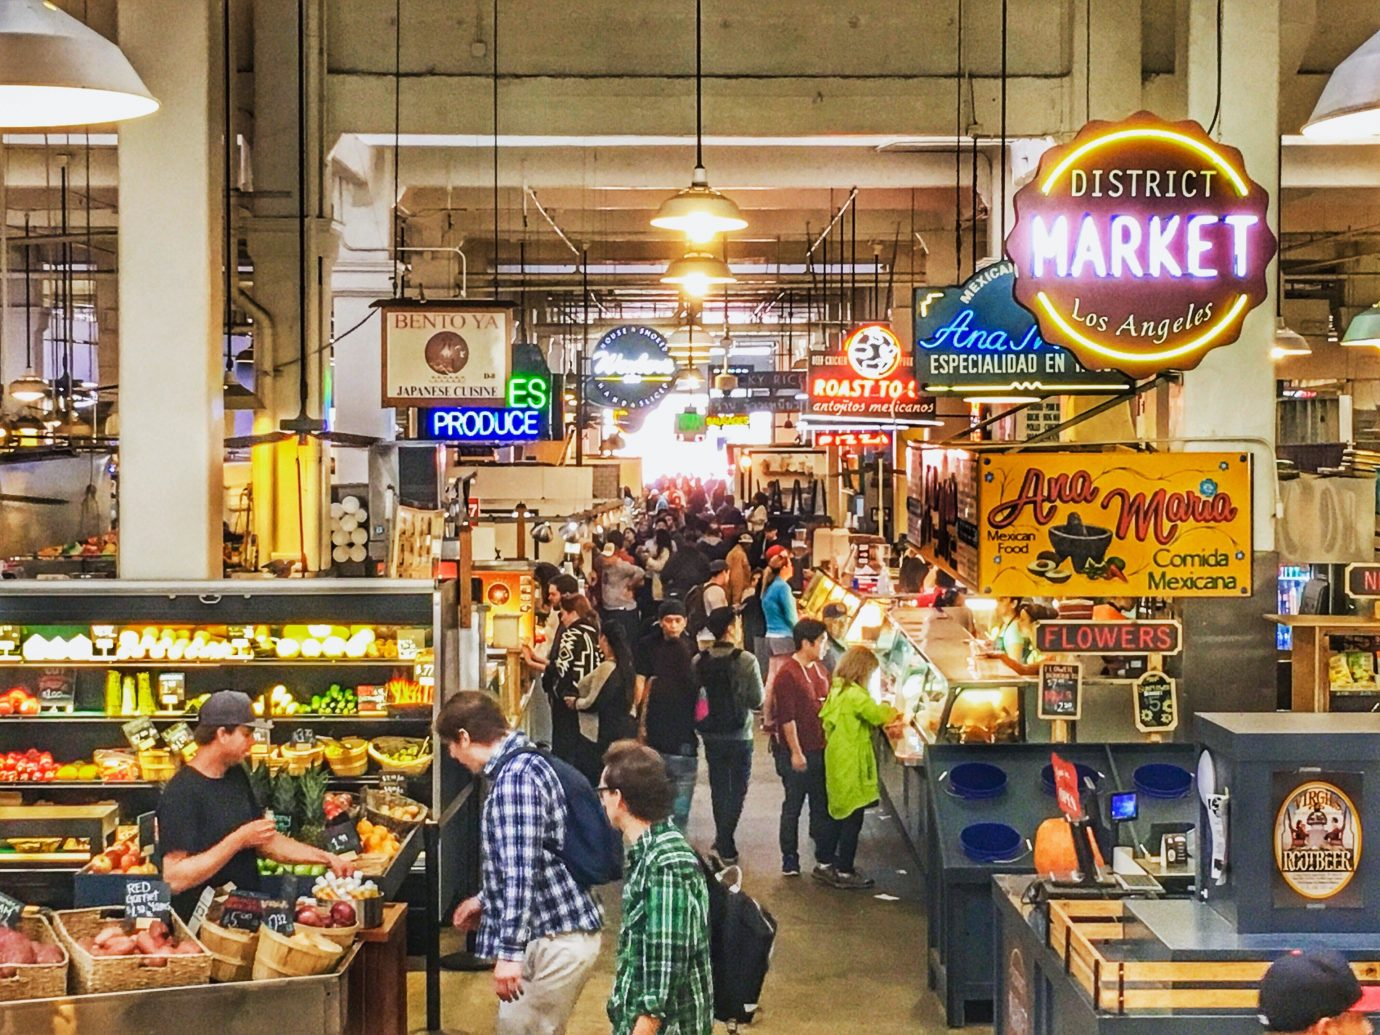 Food + Drink marketplace market retail supermarket store grocery store whole food food court bazaar grocer shopping fast food restaurant City produce sale Shop several